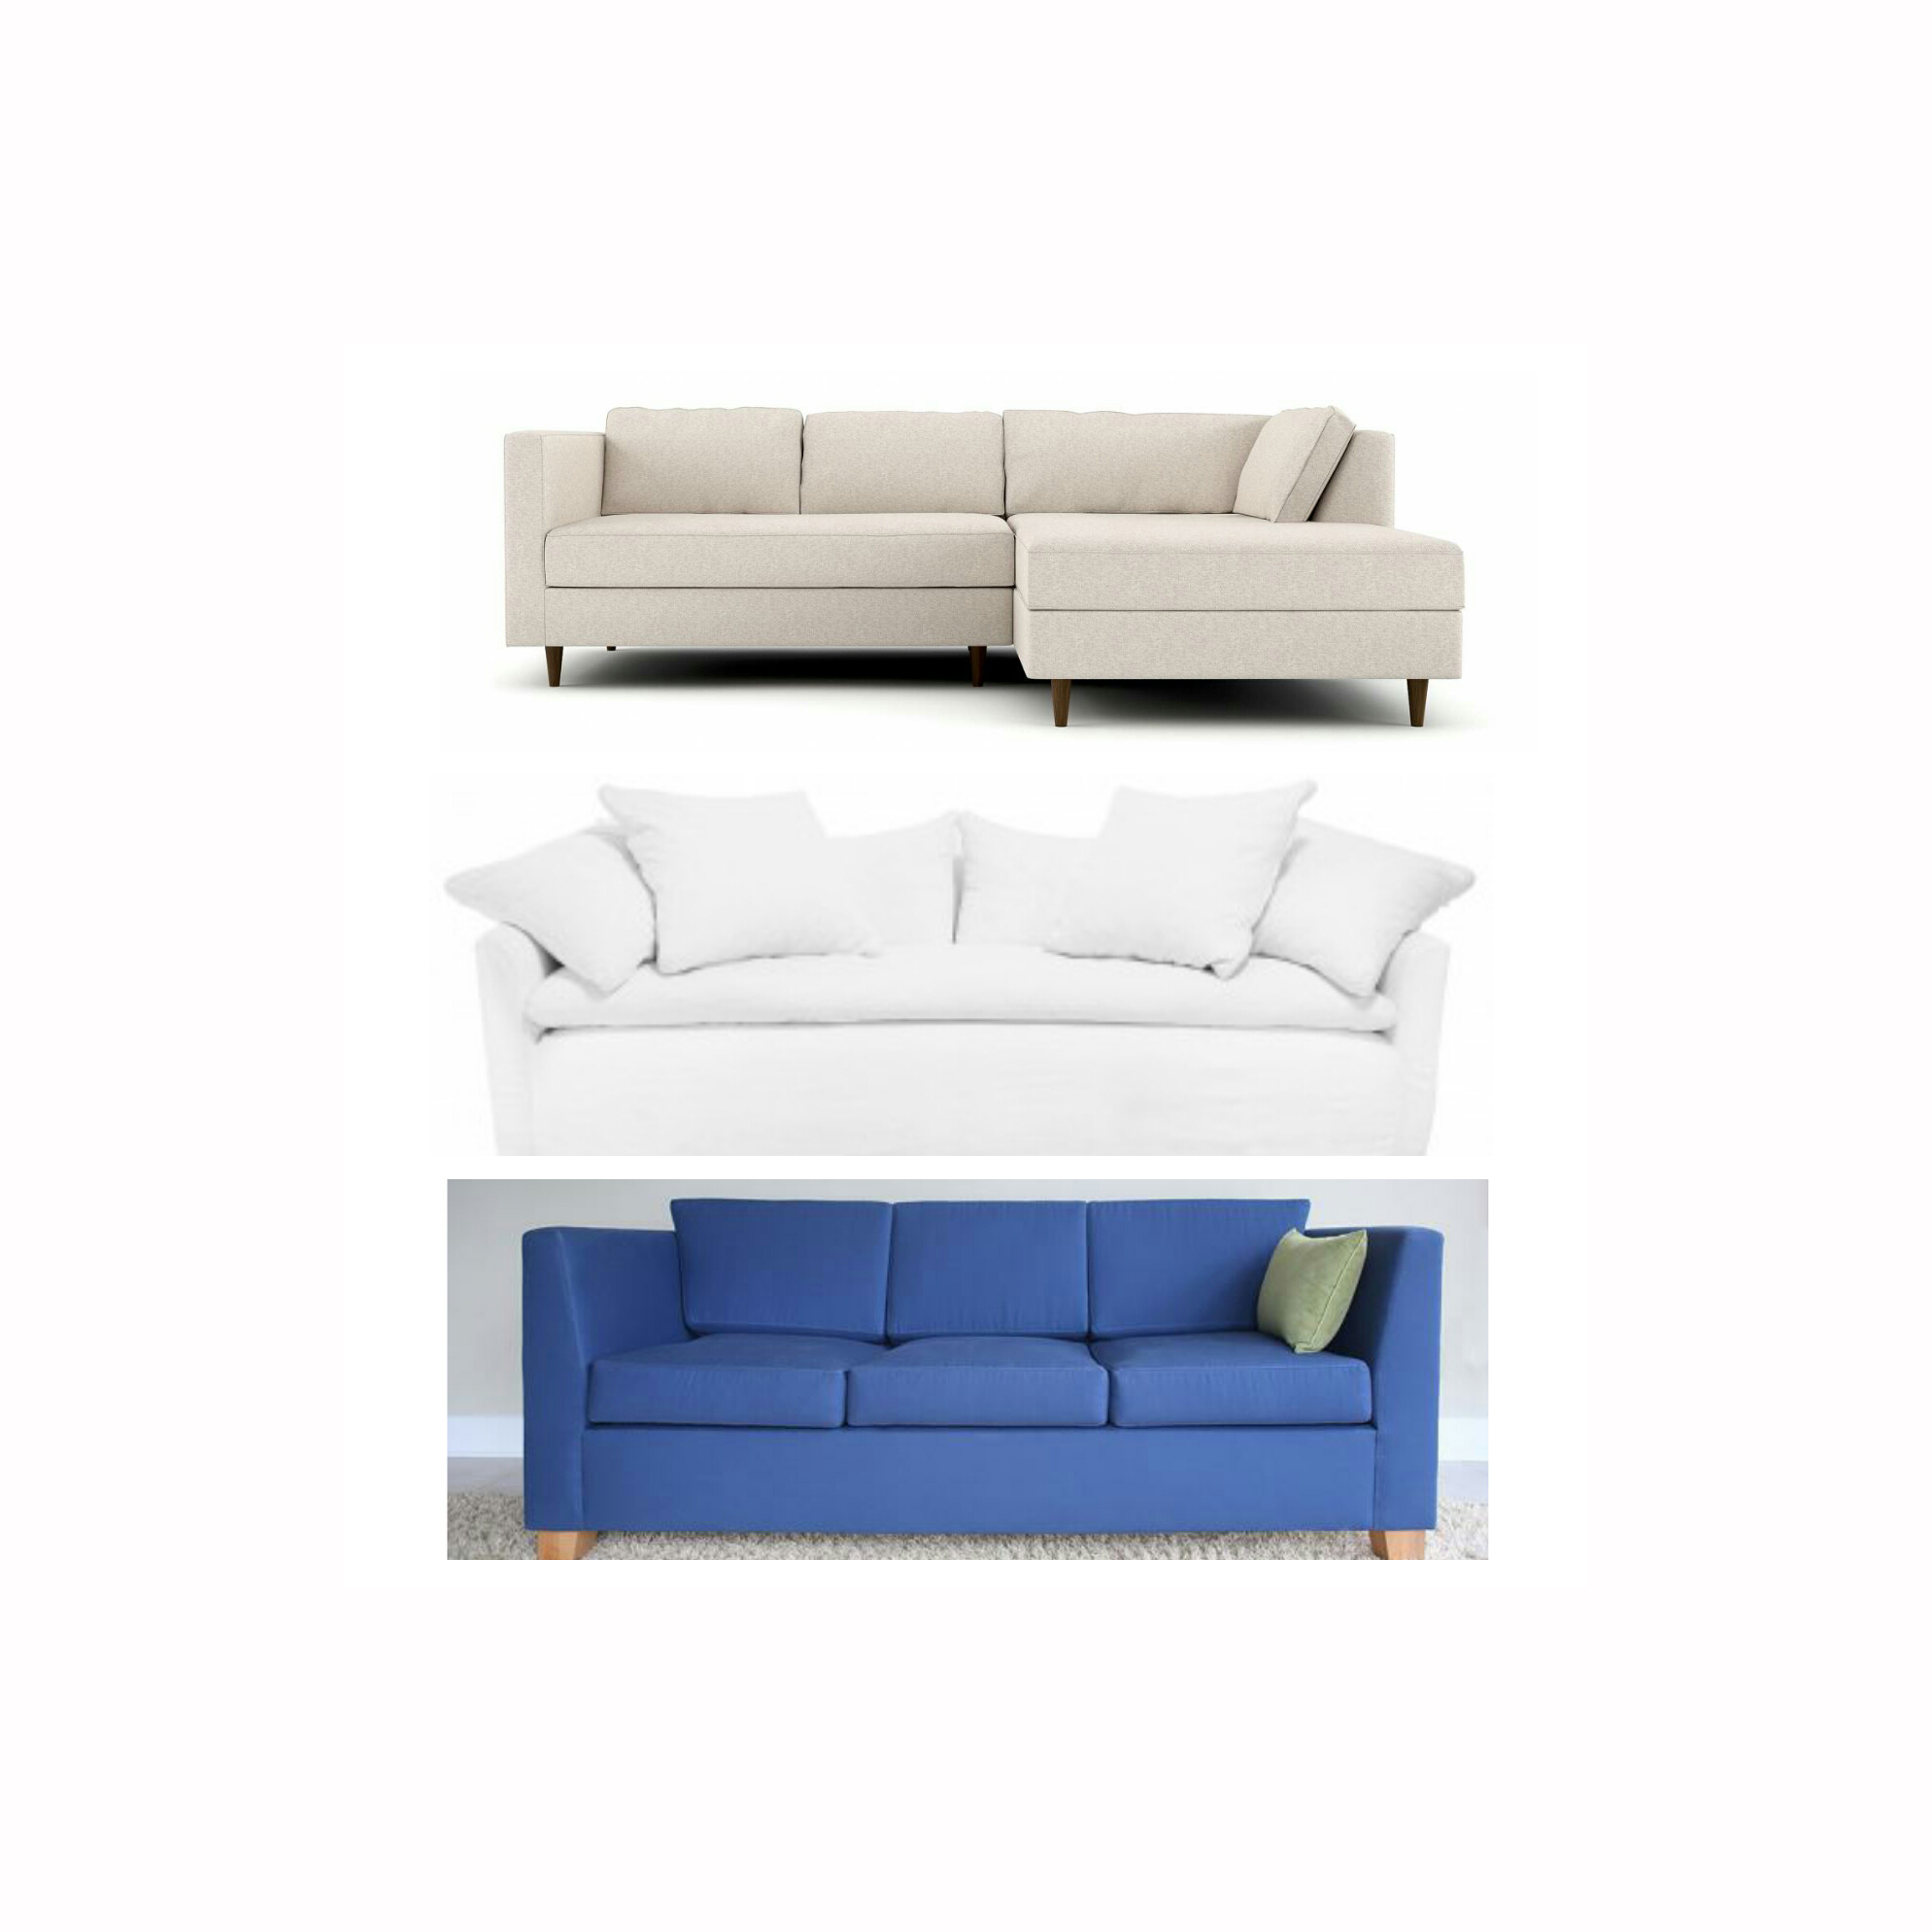 Non Toxic Sofa Guide Which Sofa Brand Is Non Toxic